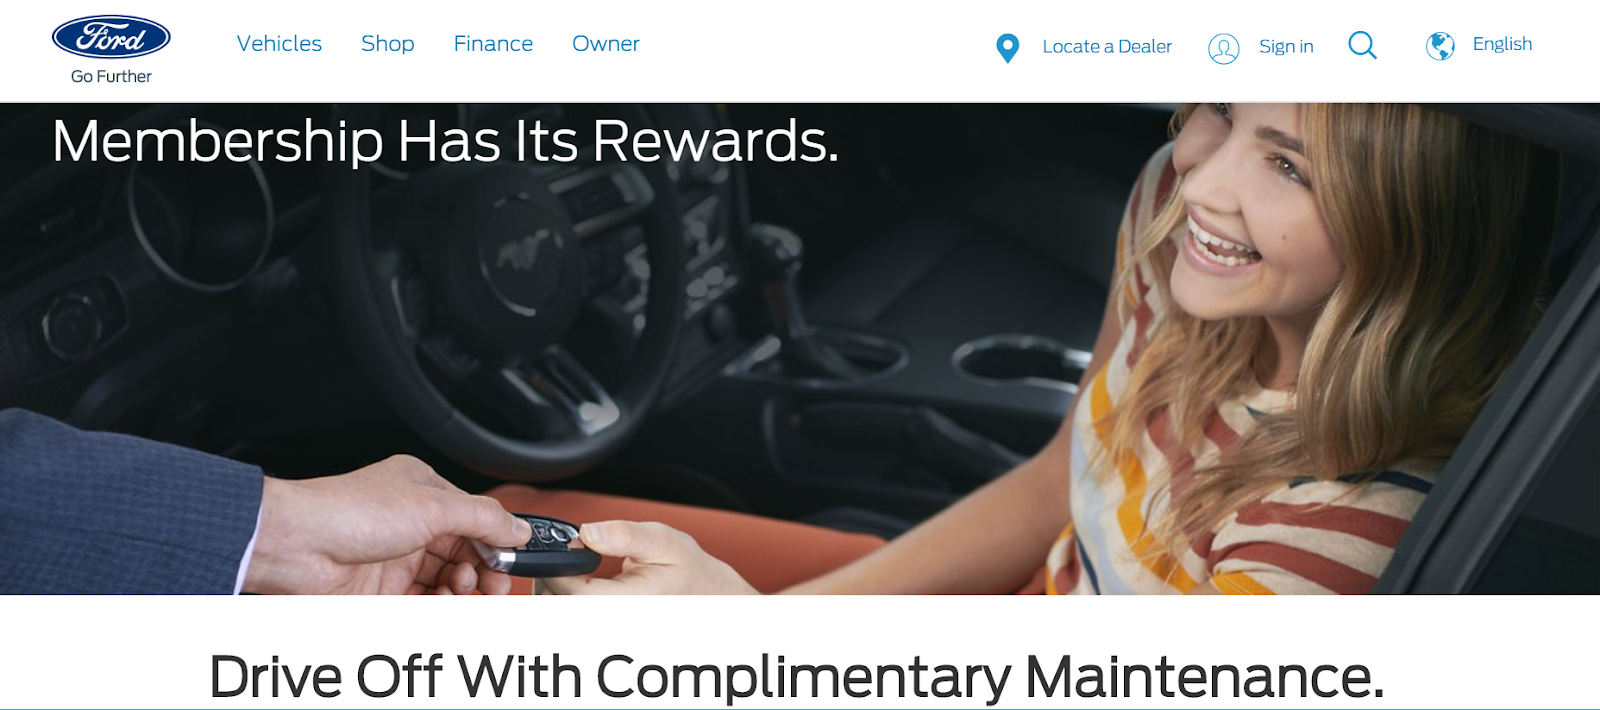 Ford Loyalty Program